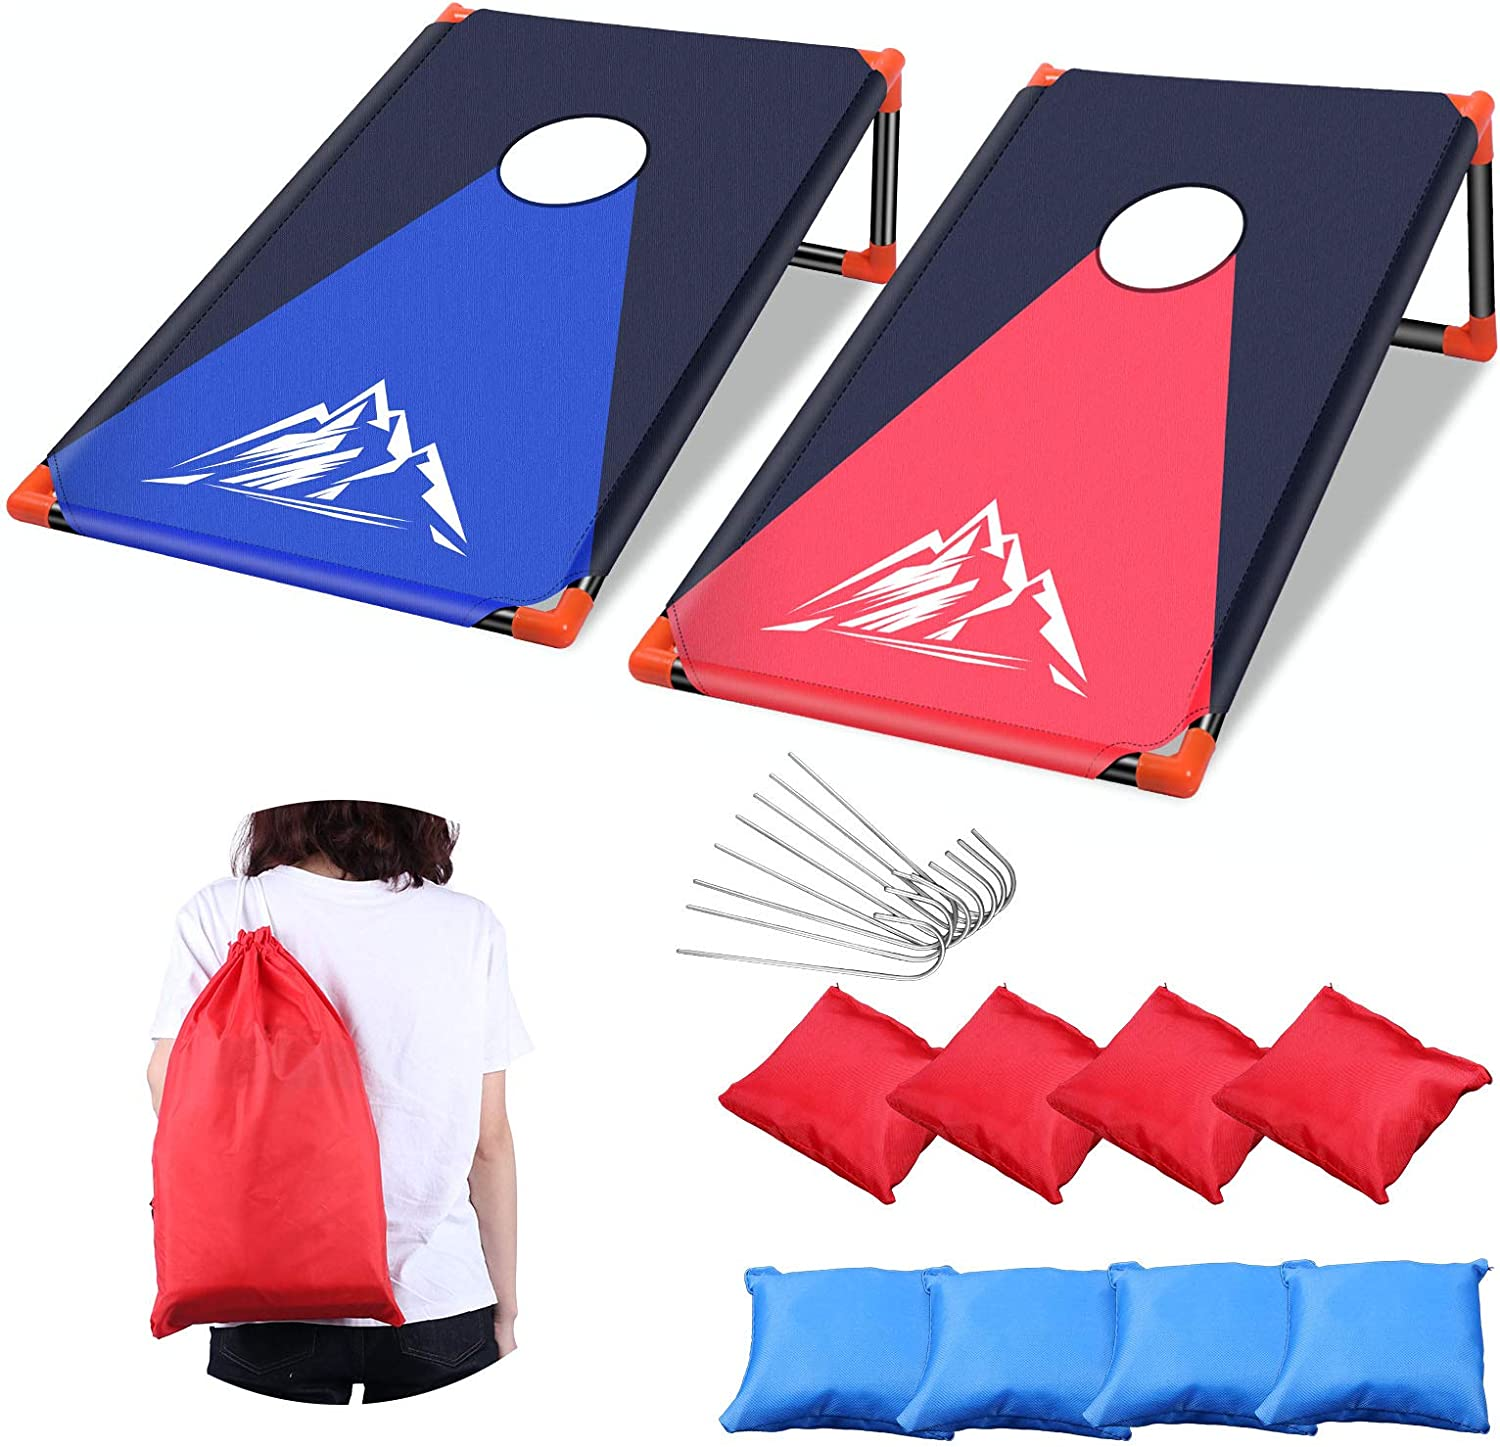 Portable Cornhole Sale special price New life Set Outdoor Toss with PVC Game Framed